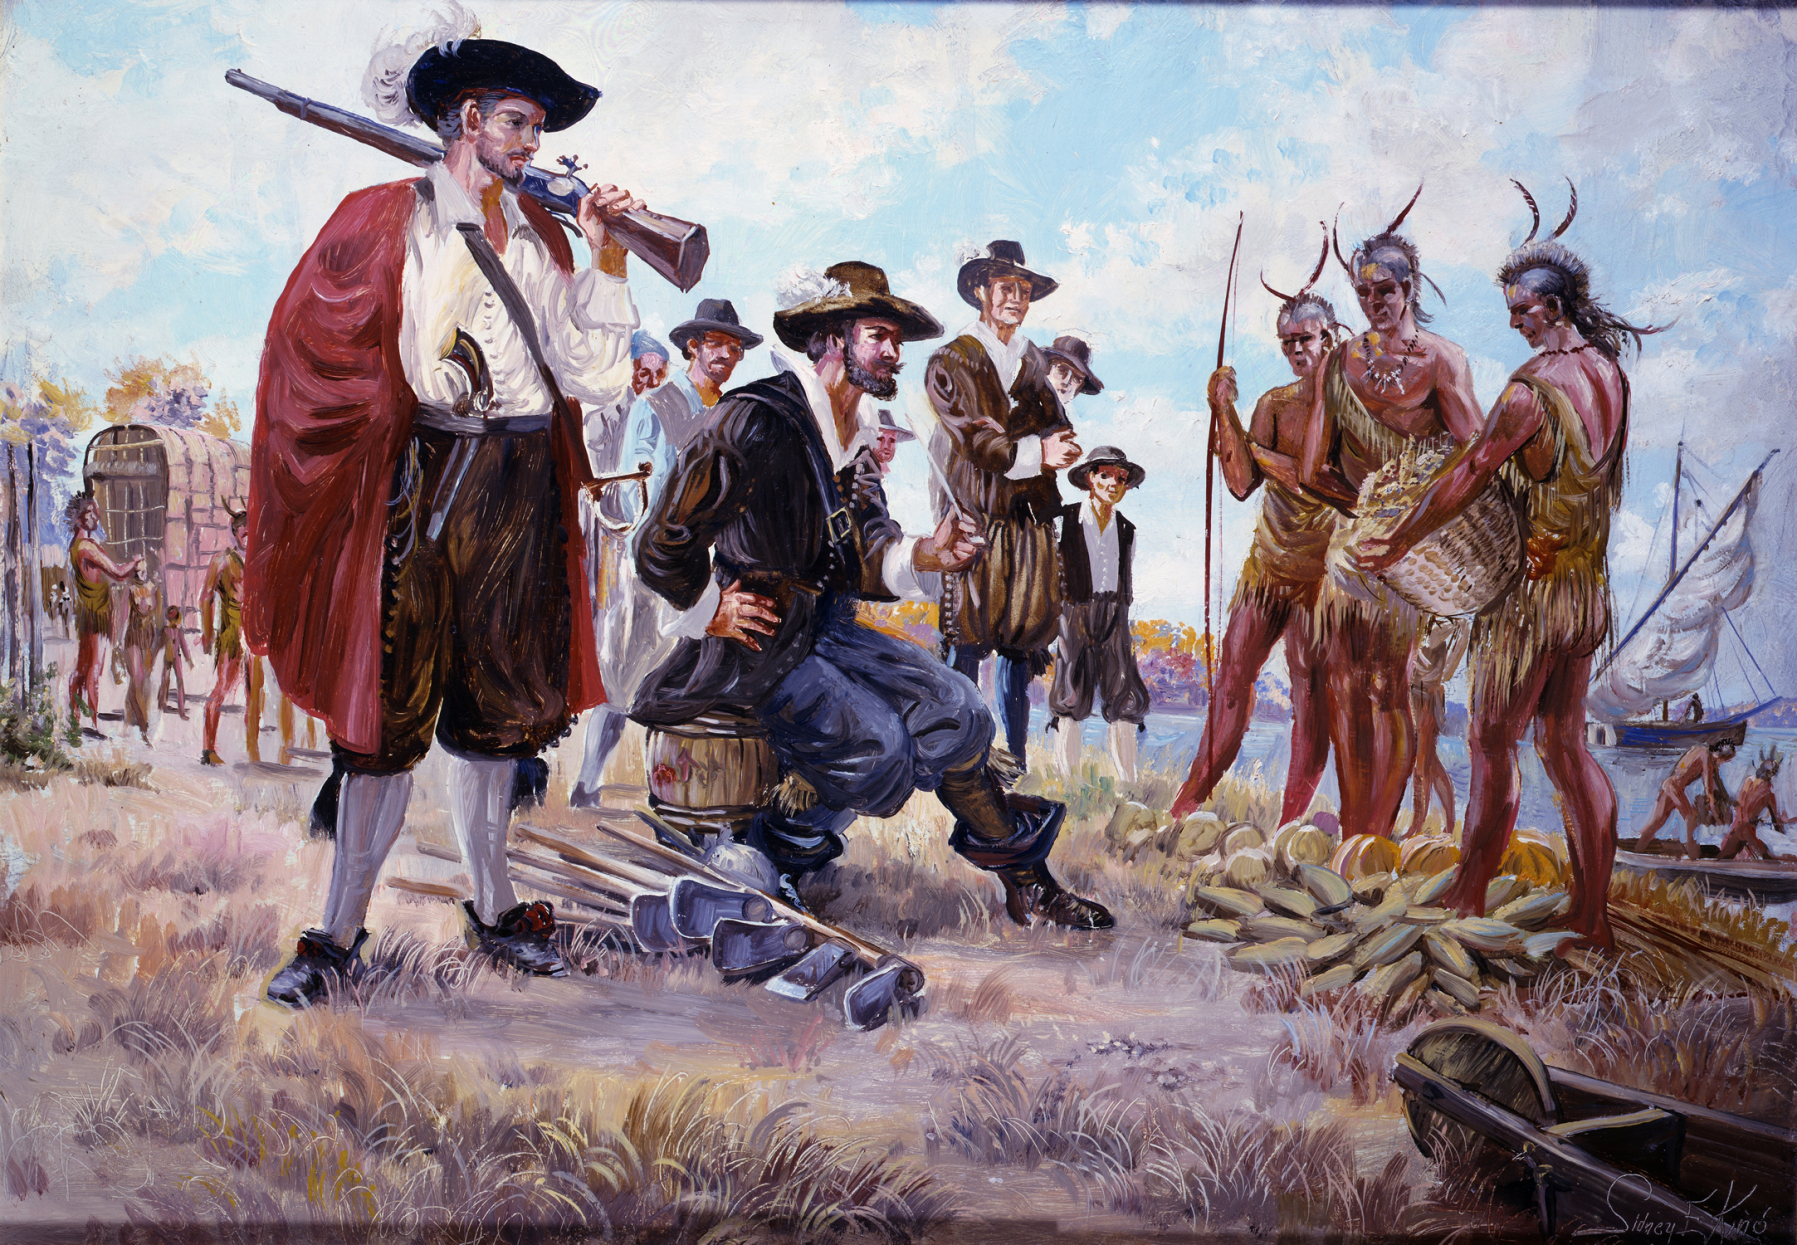 an analysis of the three most important themes of english colonization of america Most settlers who came to america in the 17th century were english perhaps most important but even more revealing is a closer analysis of the identities of.